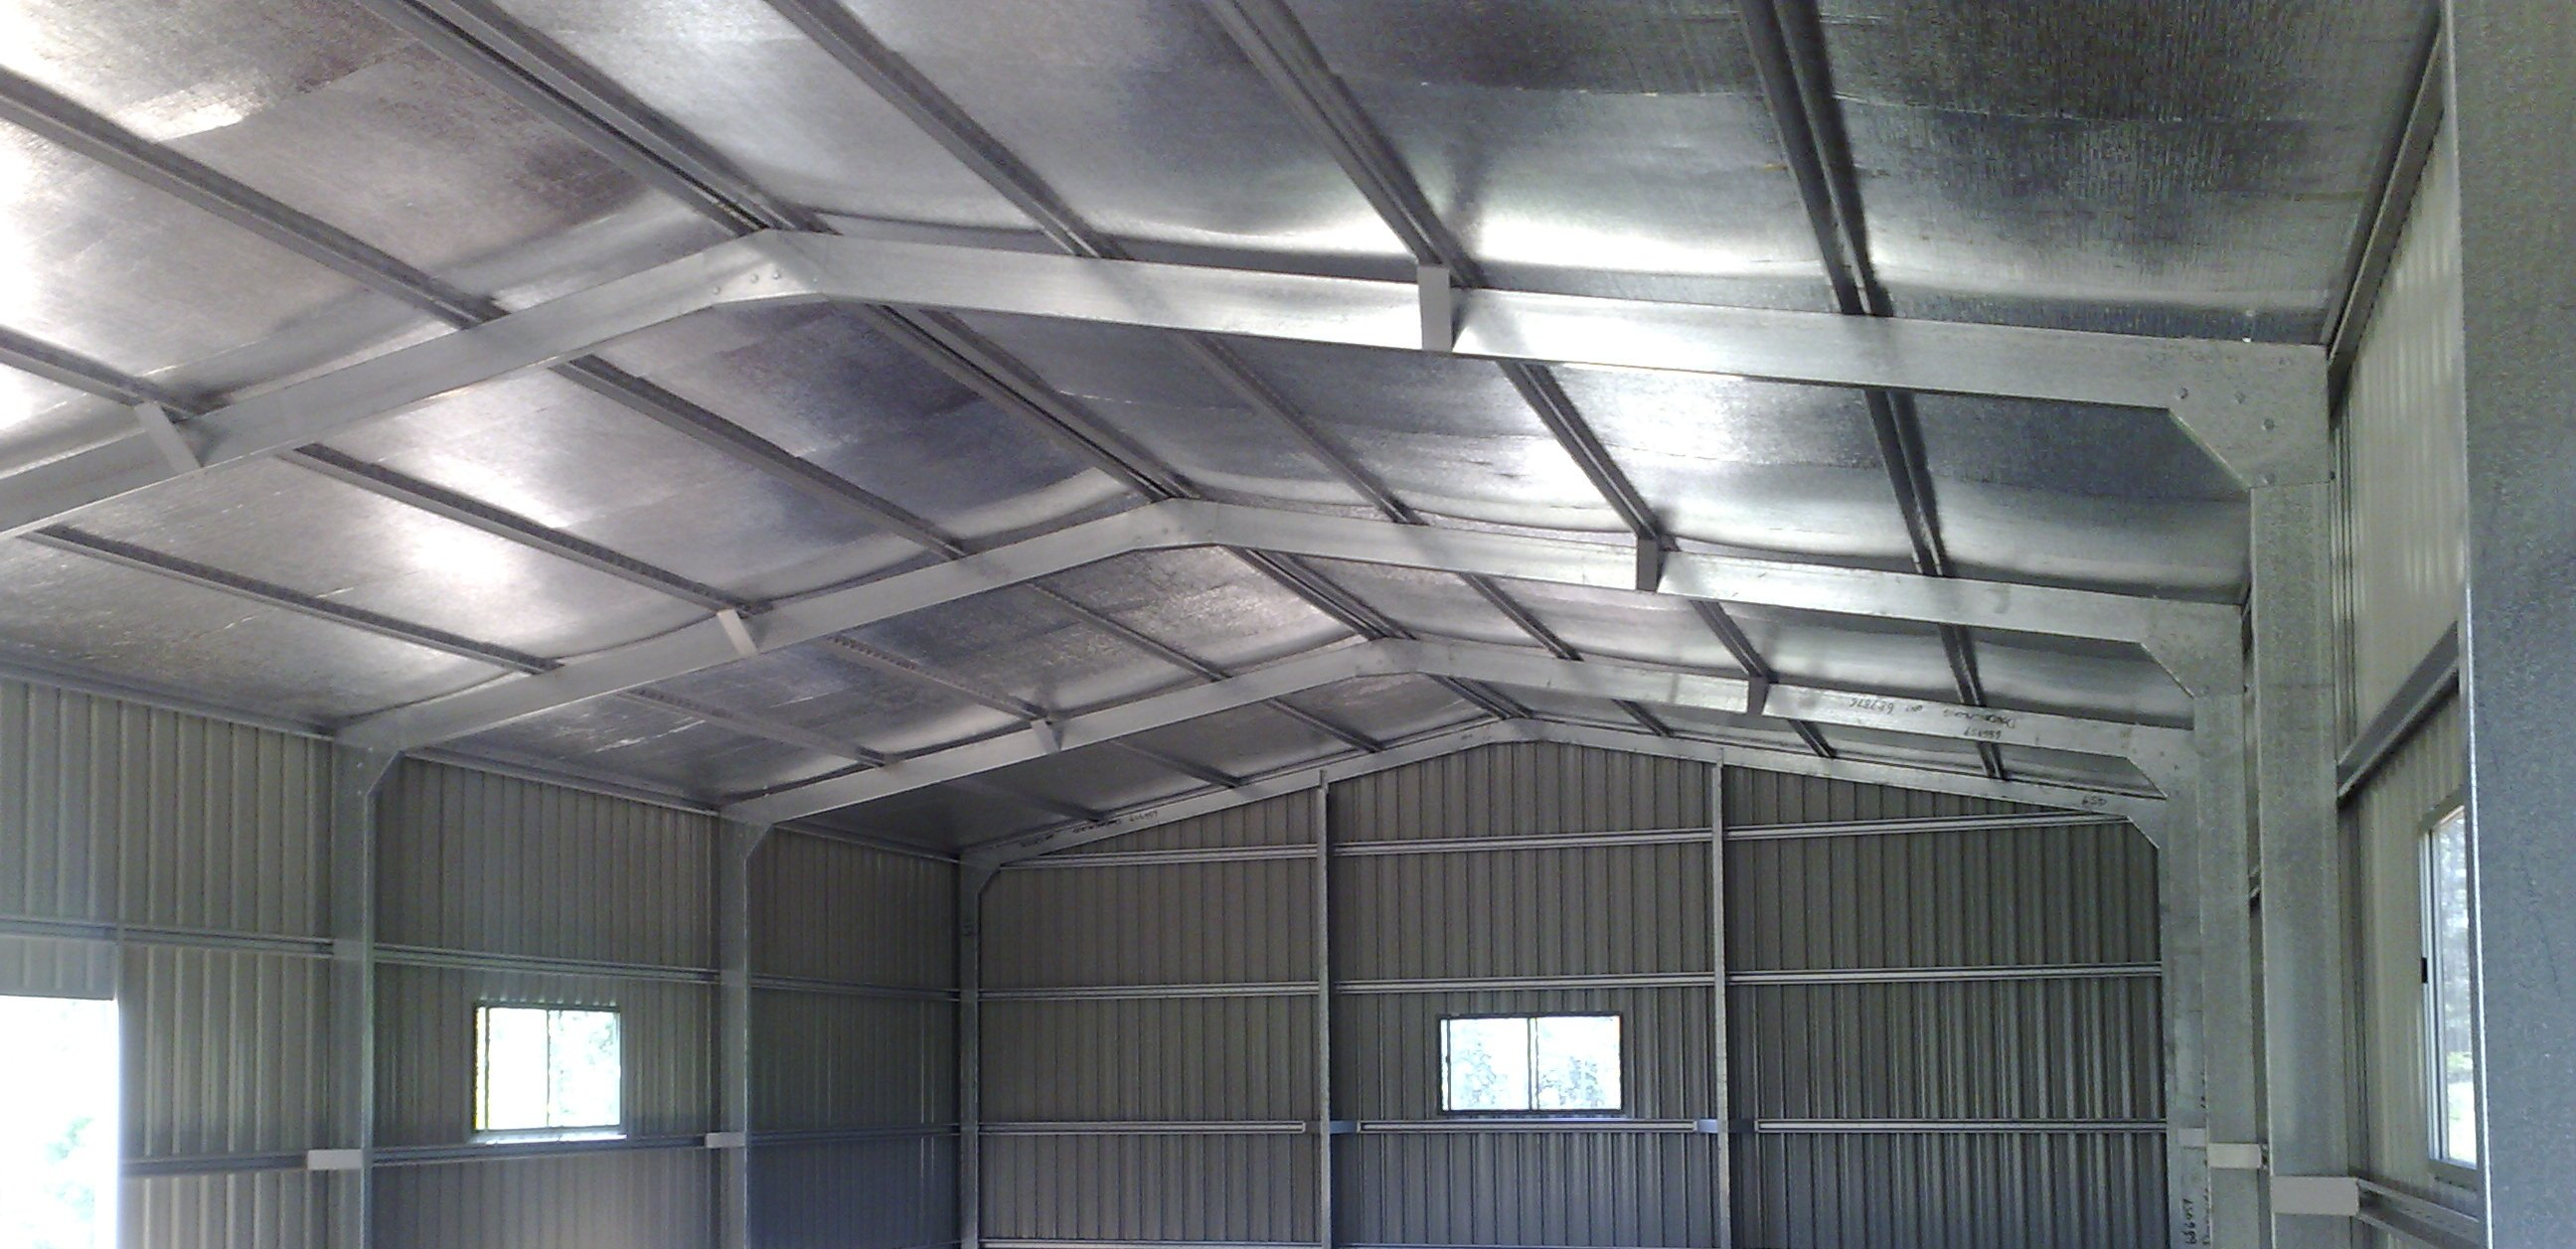 3 Popular Shedblog Blog Posts For Steel Sheds Steel